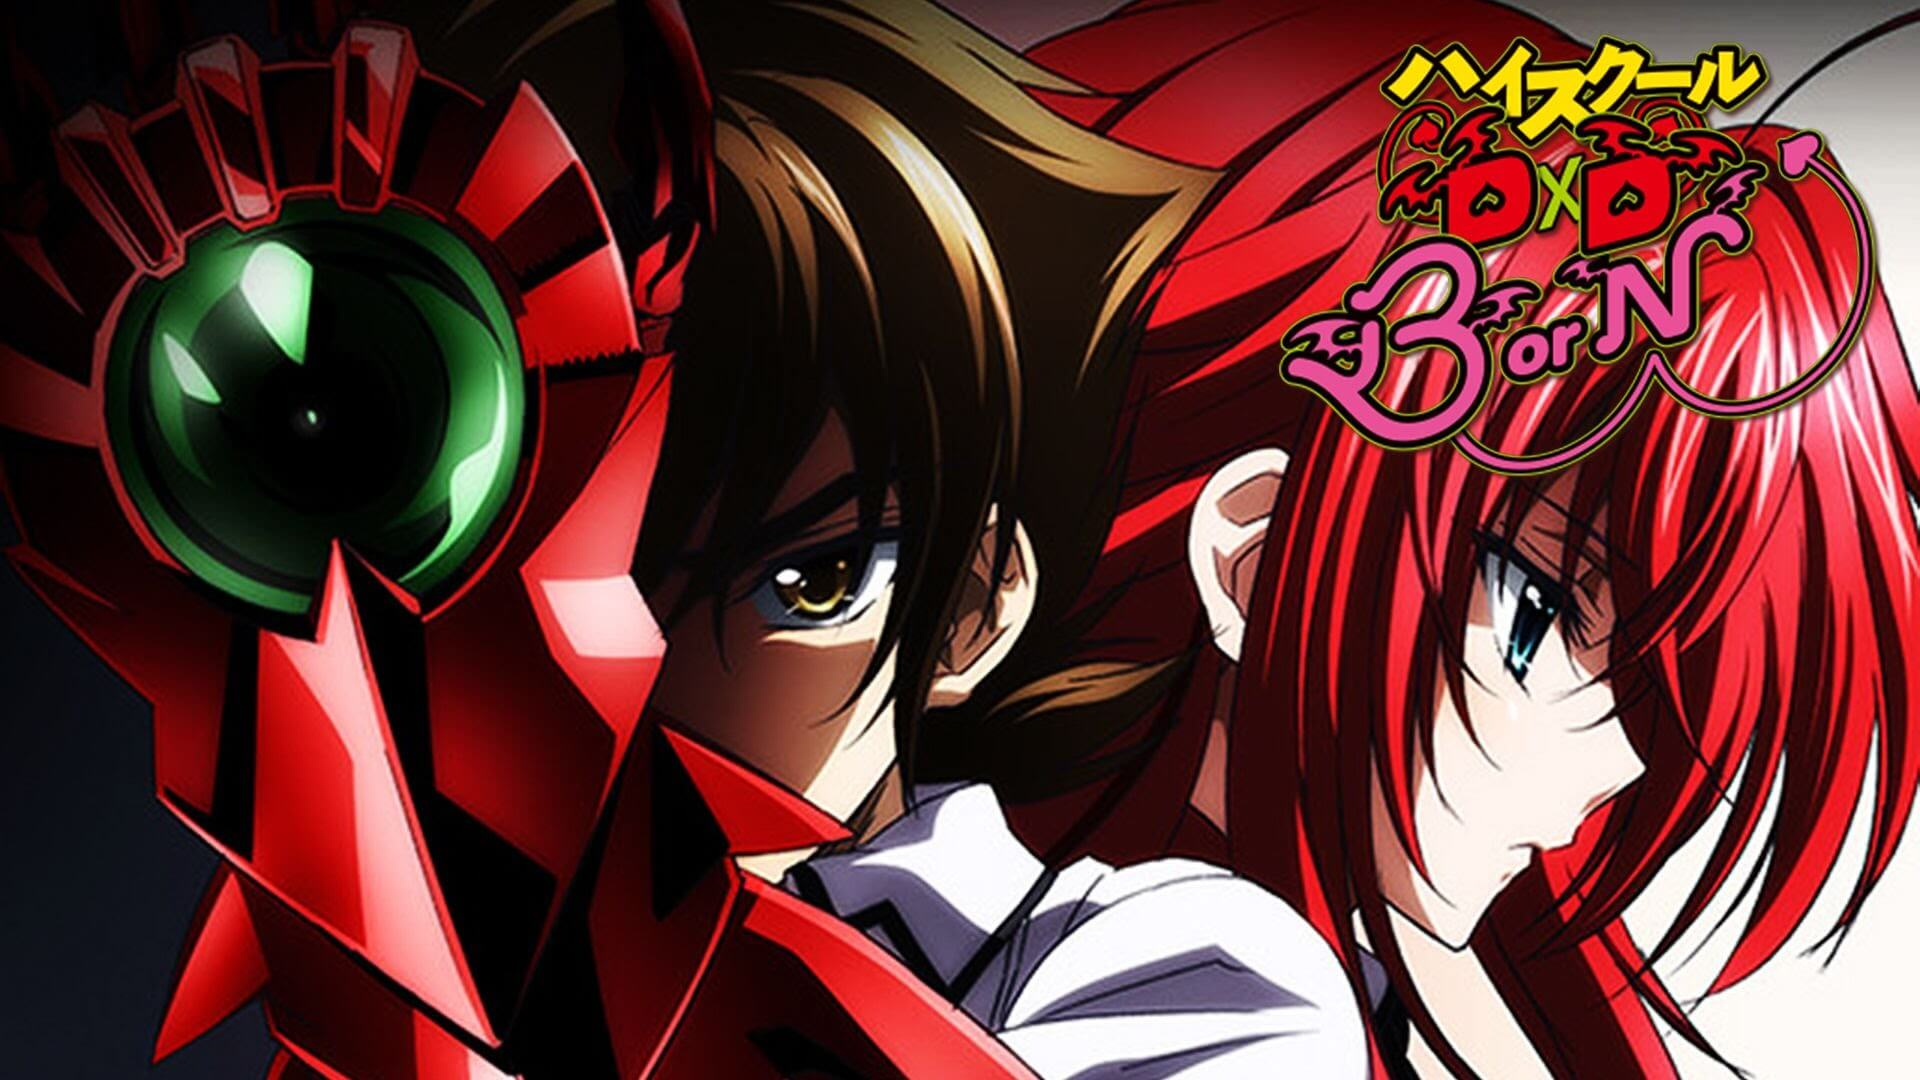 High School DxD BorN Titulo